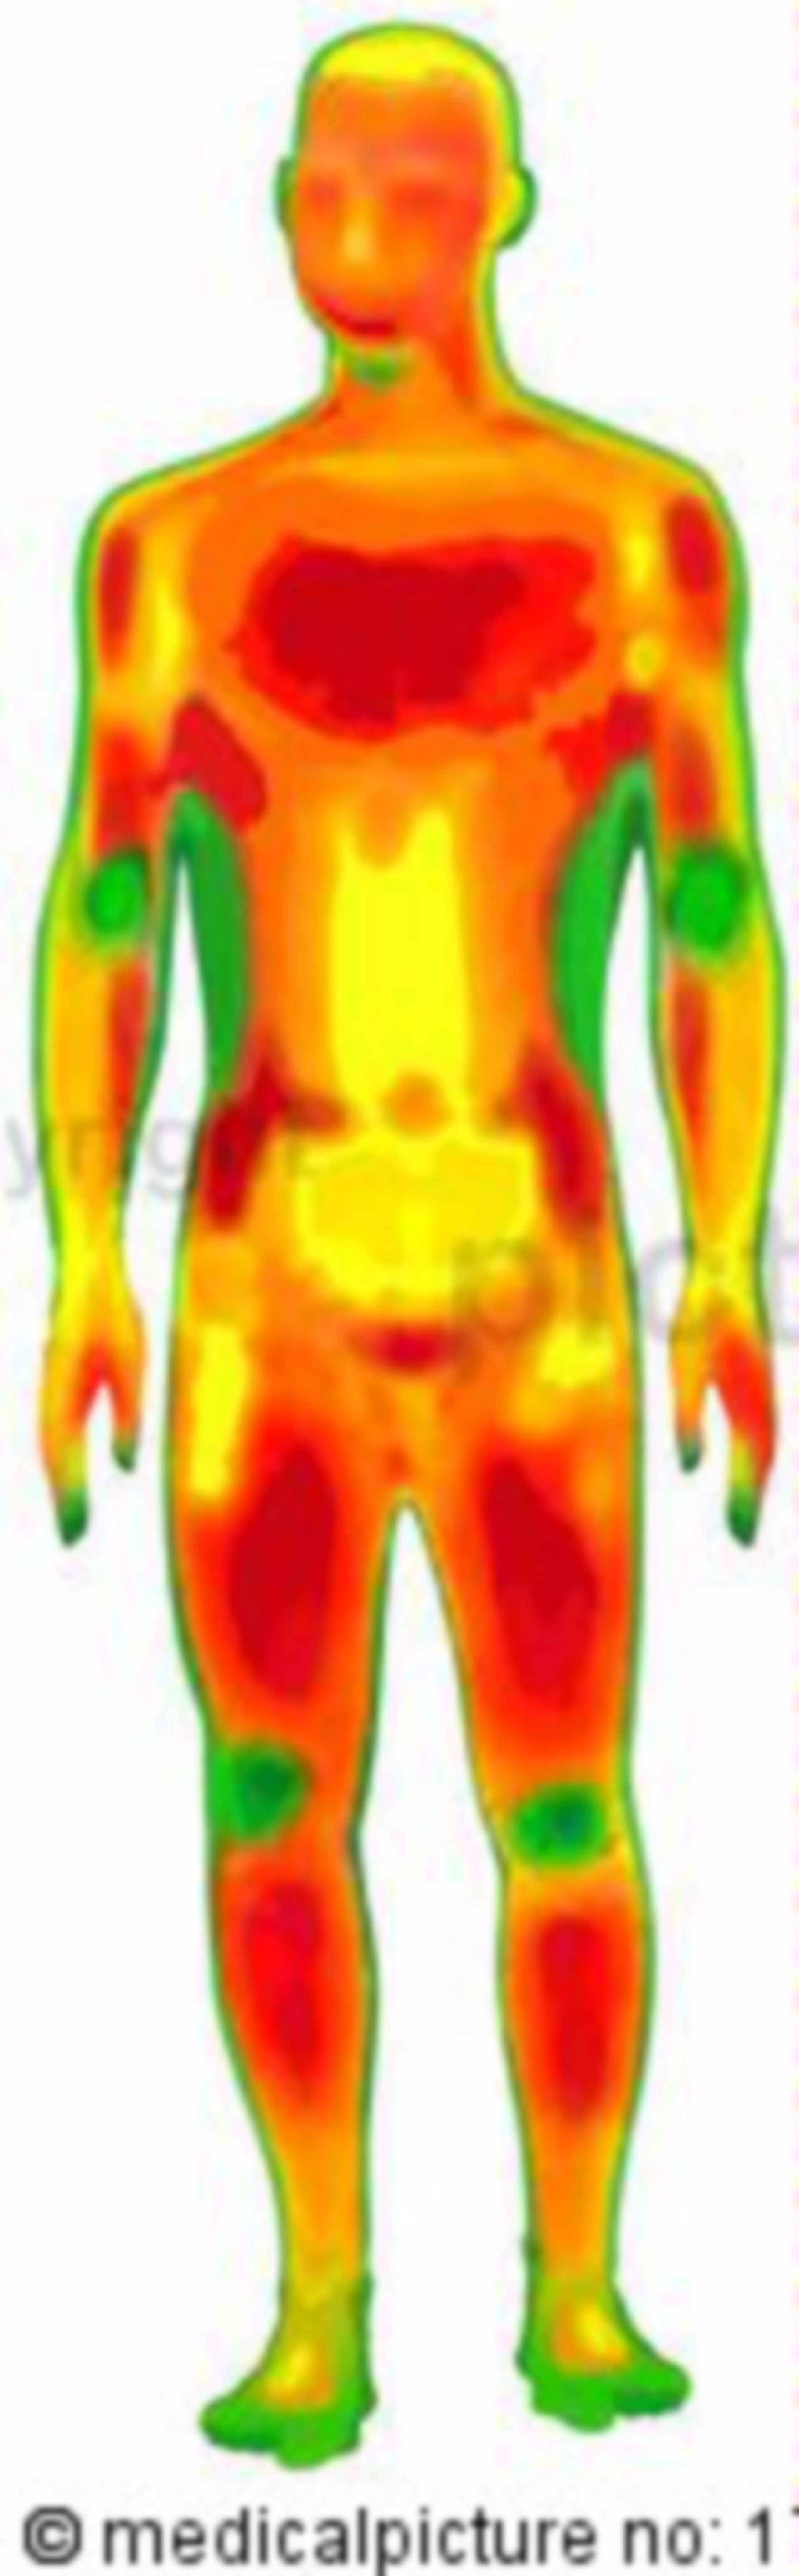 Thermographic illustration of a naked man